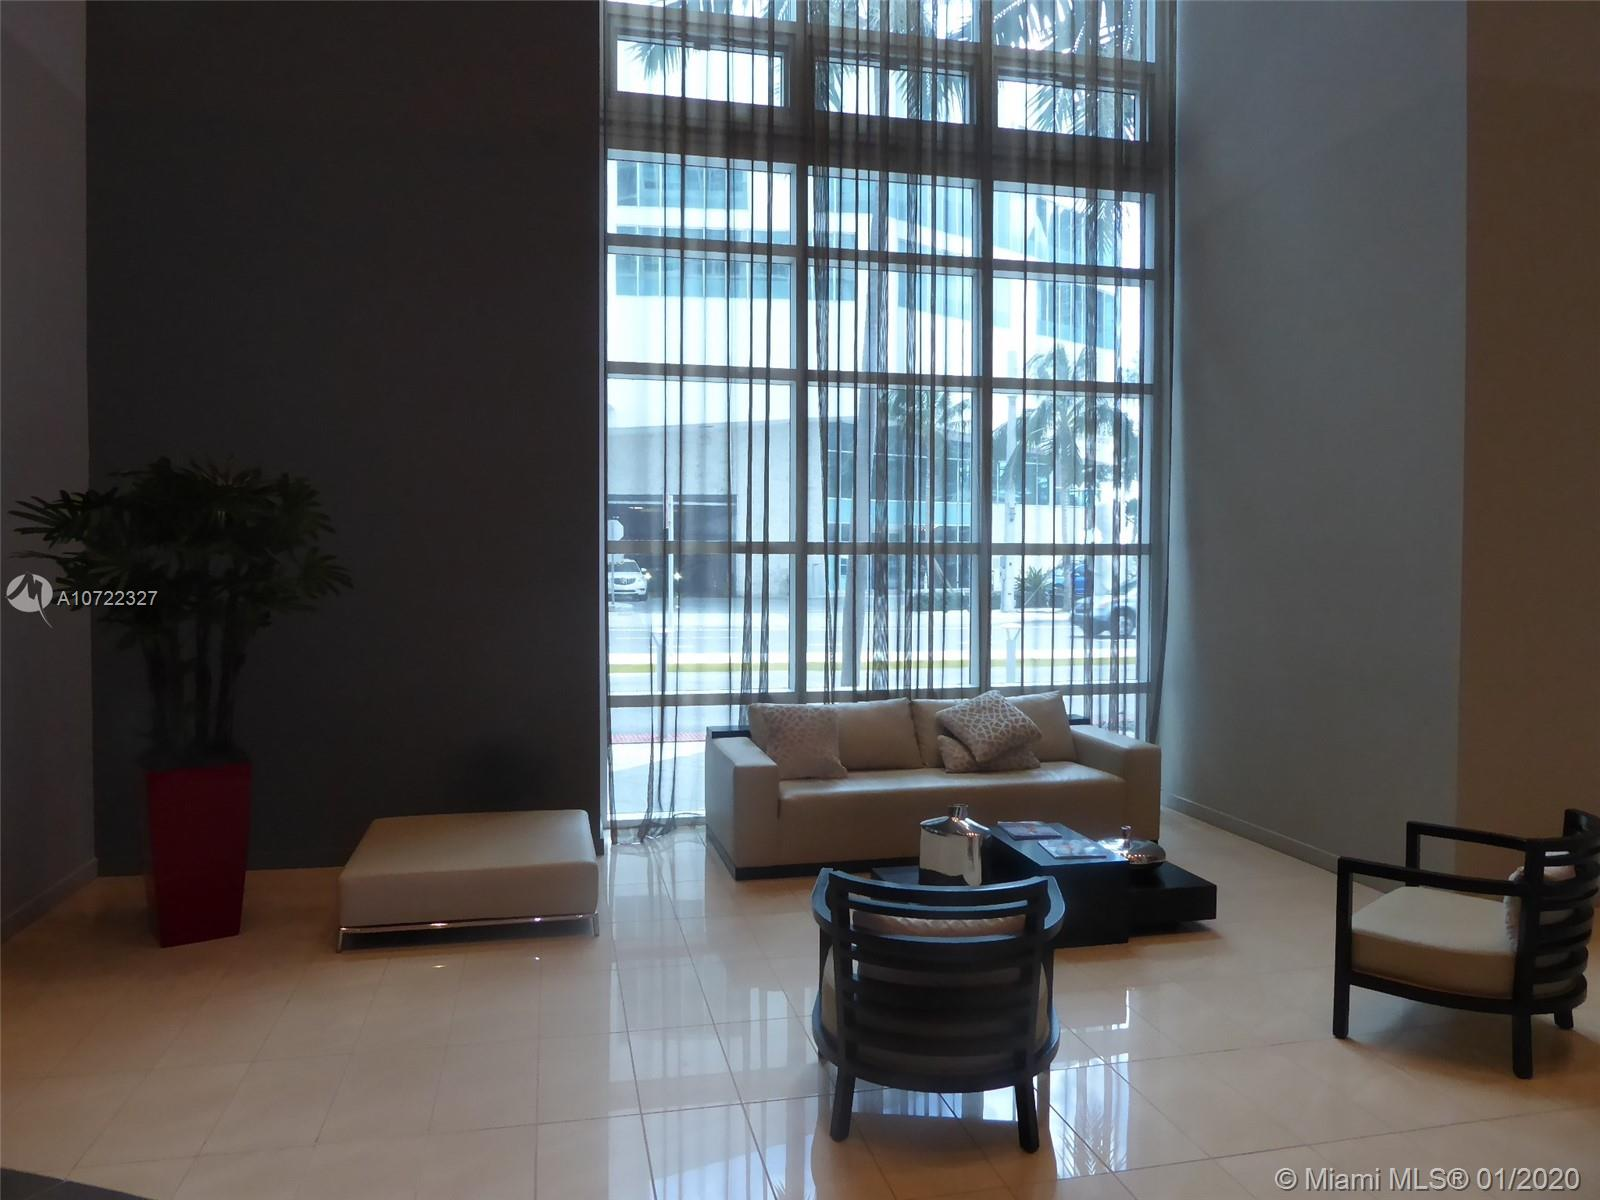 300 Biscayne blvd-PH 3802 miami-fl-33131-a10722327-Pic57